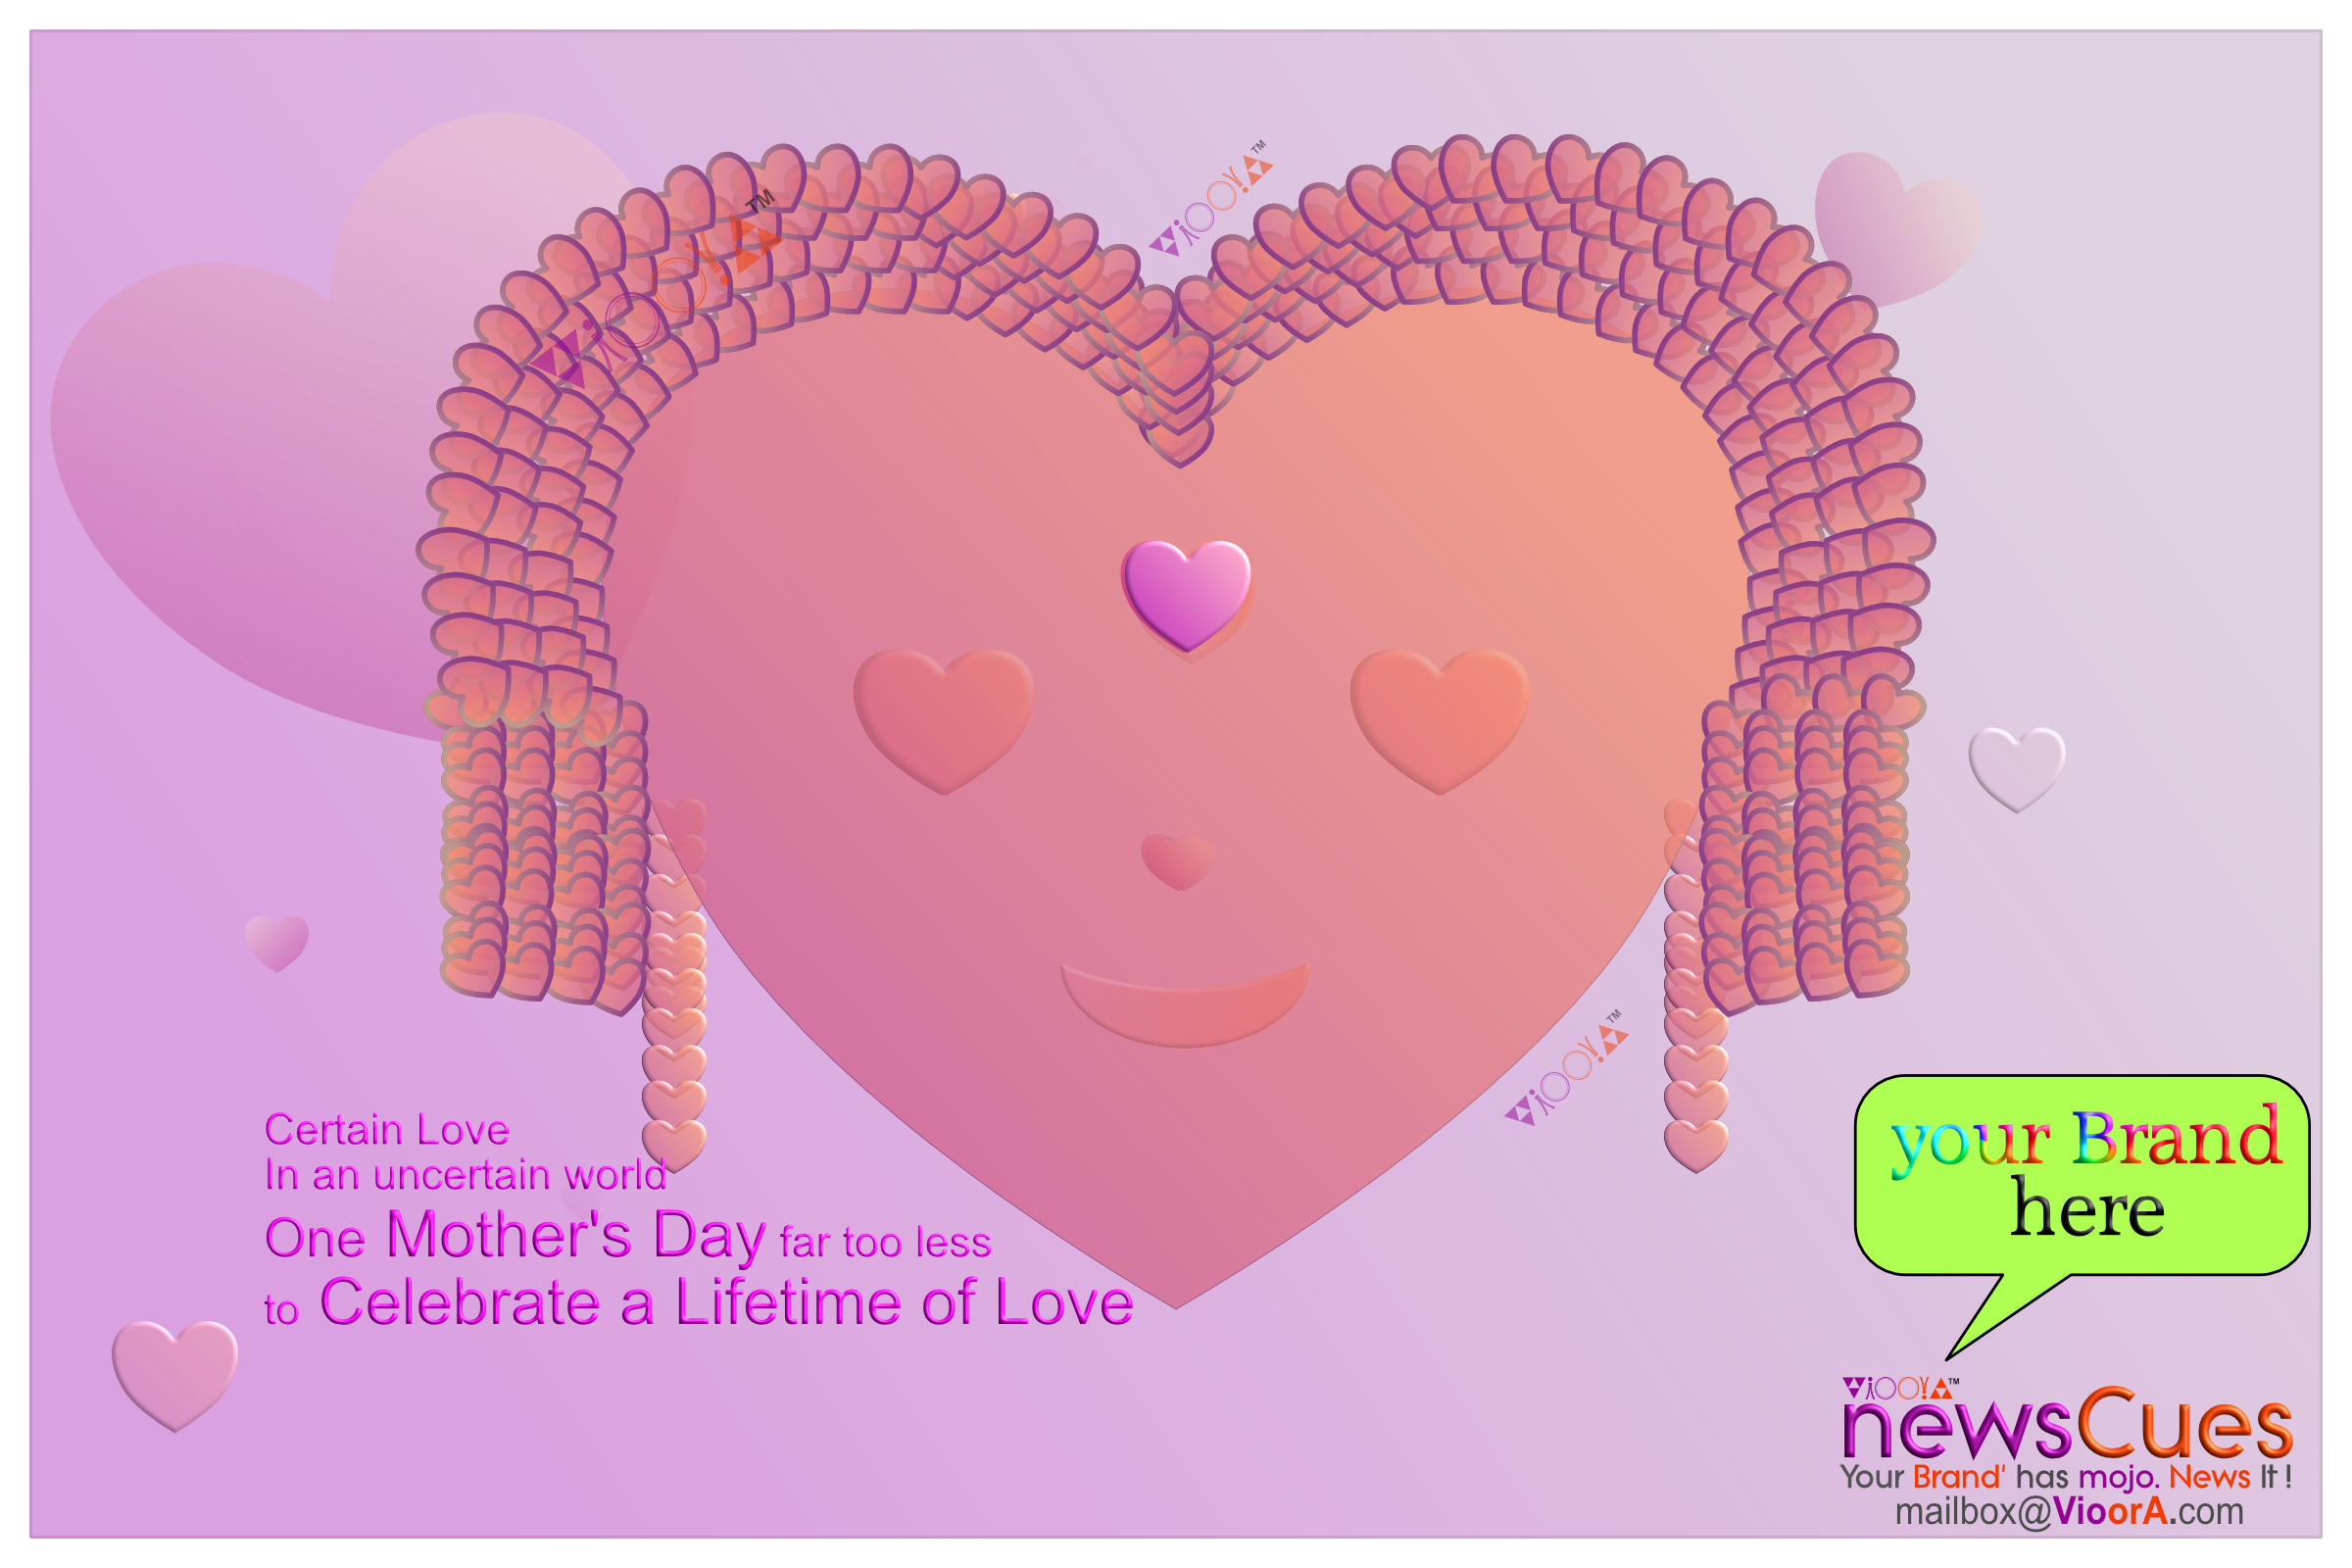 Mother's Day,Mother,Celebrate,Love,VioorA,News,cues,leverage,brand,vehicle,